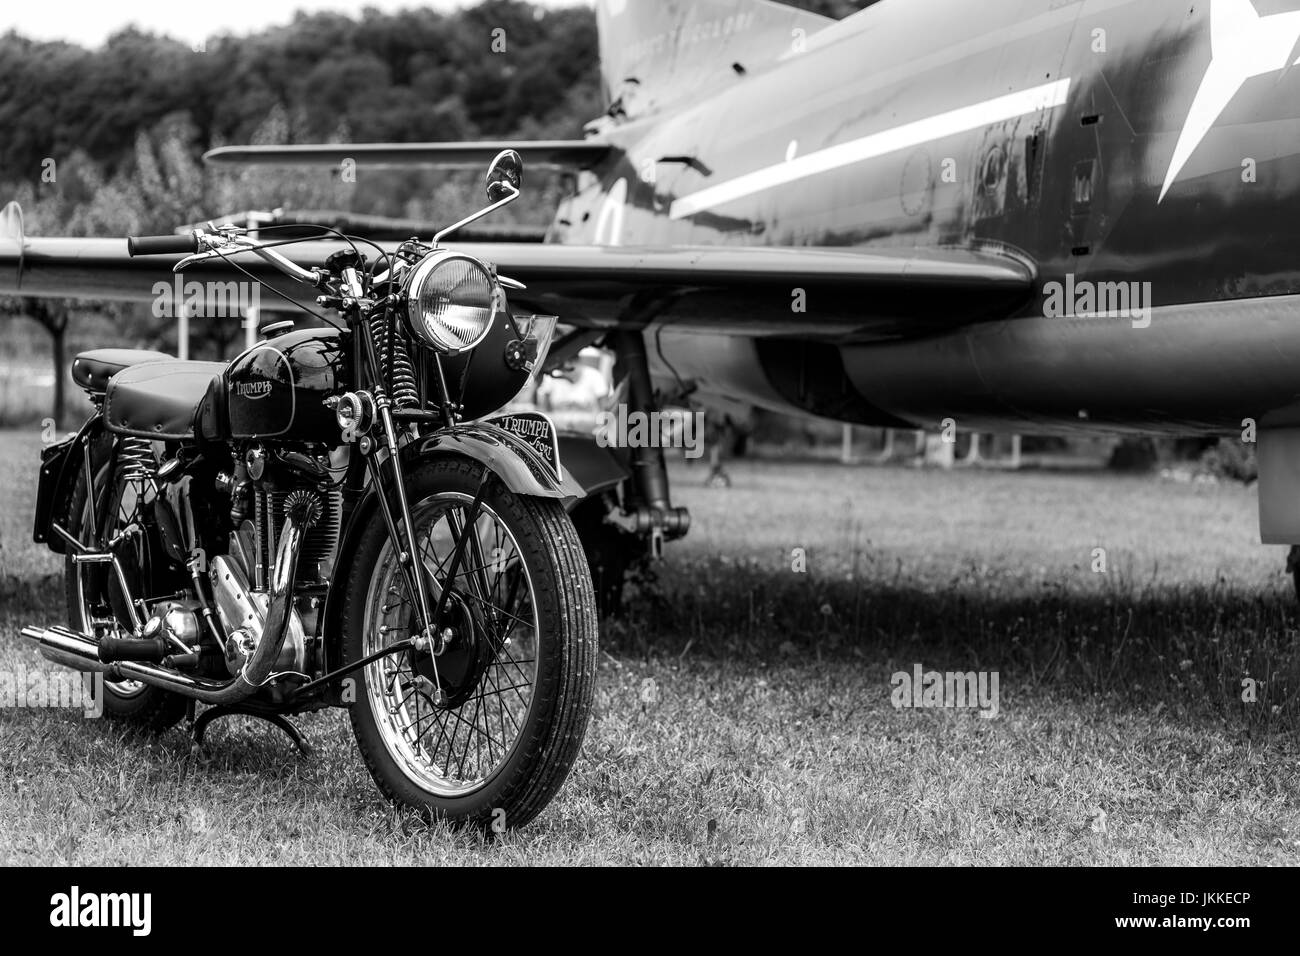 Old black motorcycle made by triumph motorcycles british brand with an airplane in the background black and white